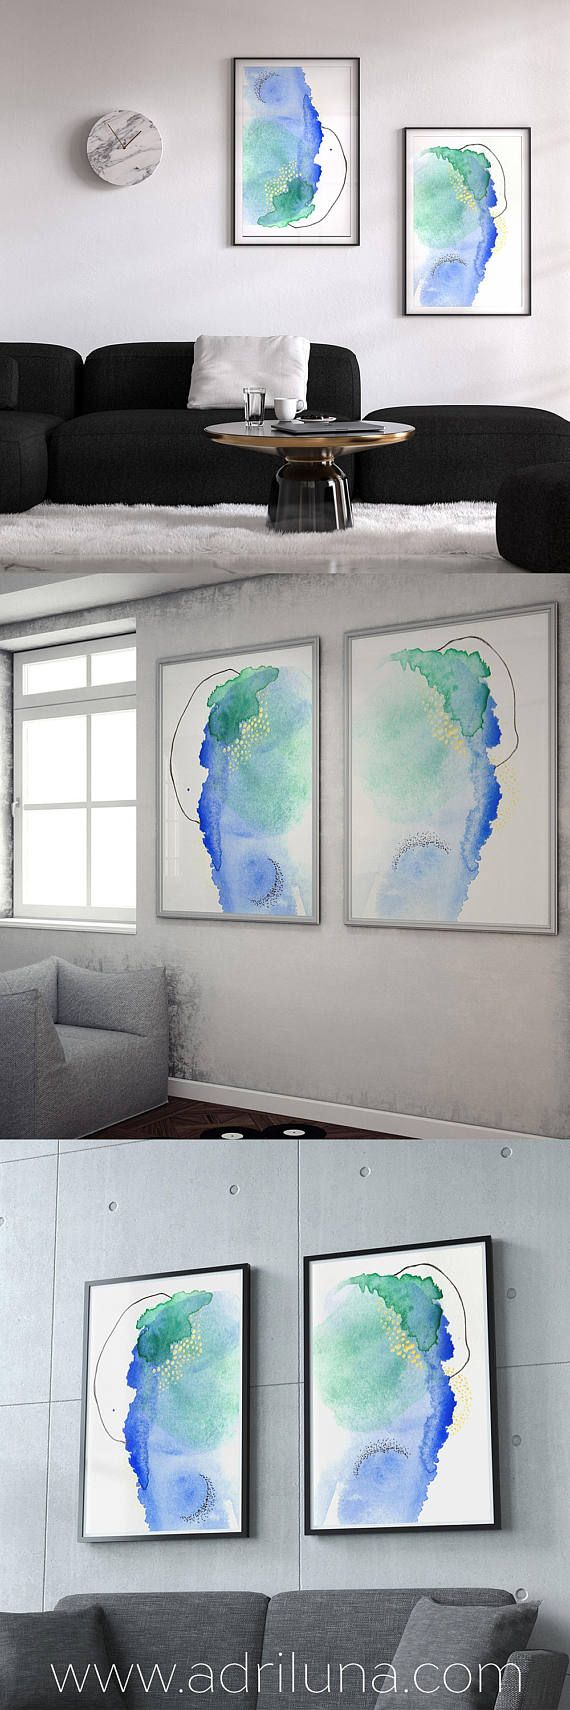 Set of Art Prints. A set of art prints is the perfect Valentines Day gift! Show your love for your love with two prints, one for each of you. Each painting was created from one mark, like a Rorschach blot of paint, then developed together. This lovely personal print set is a unique gift.